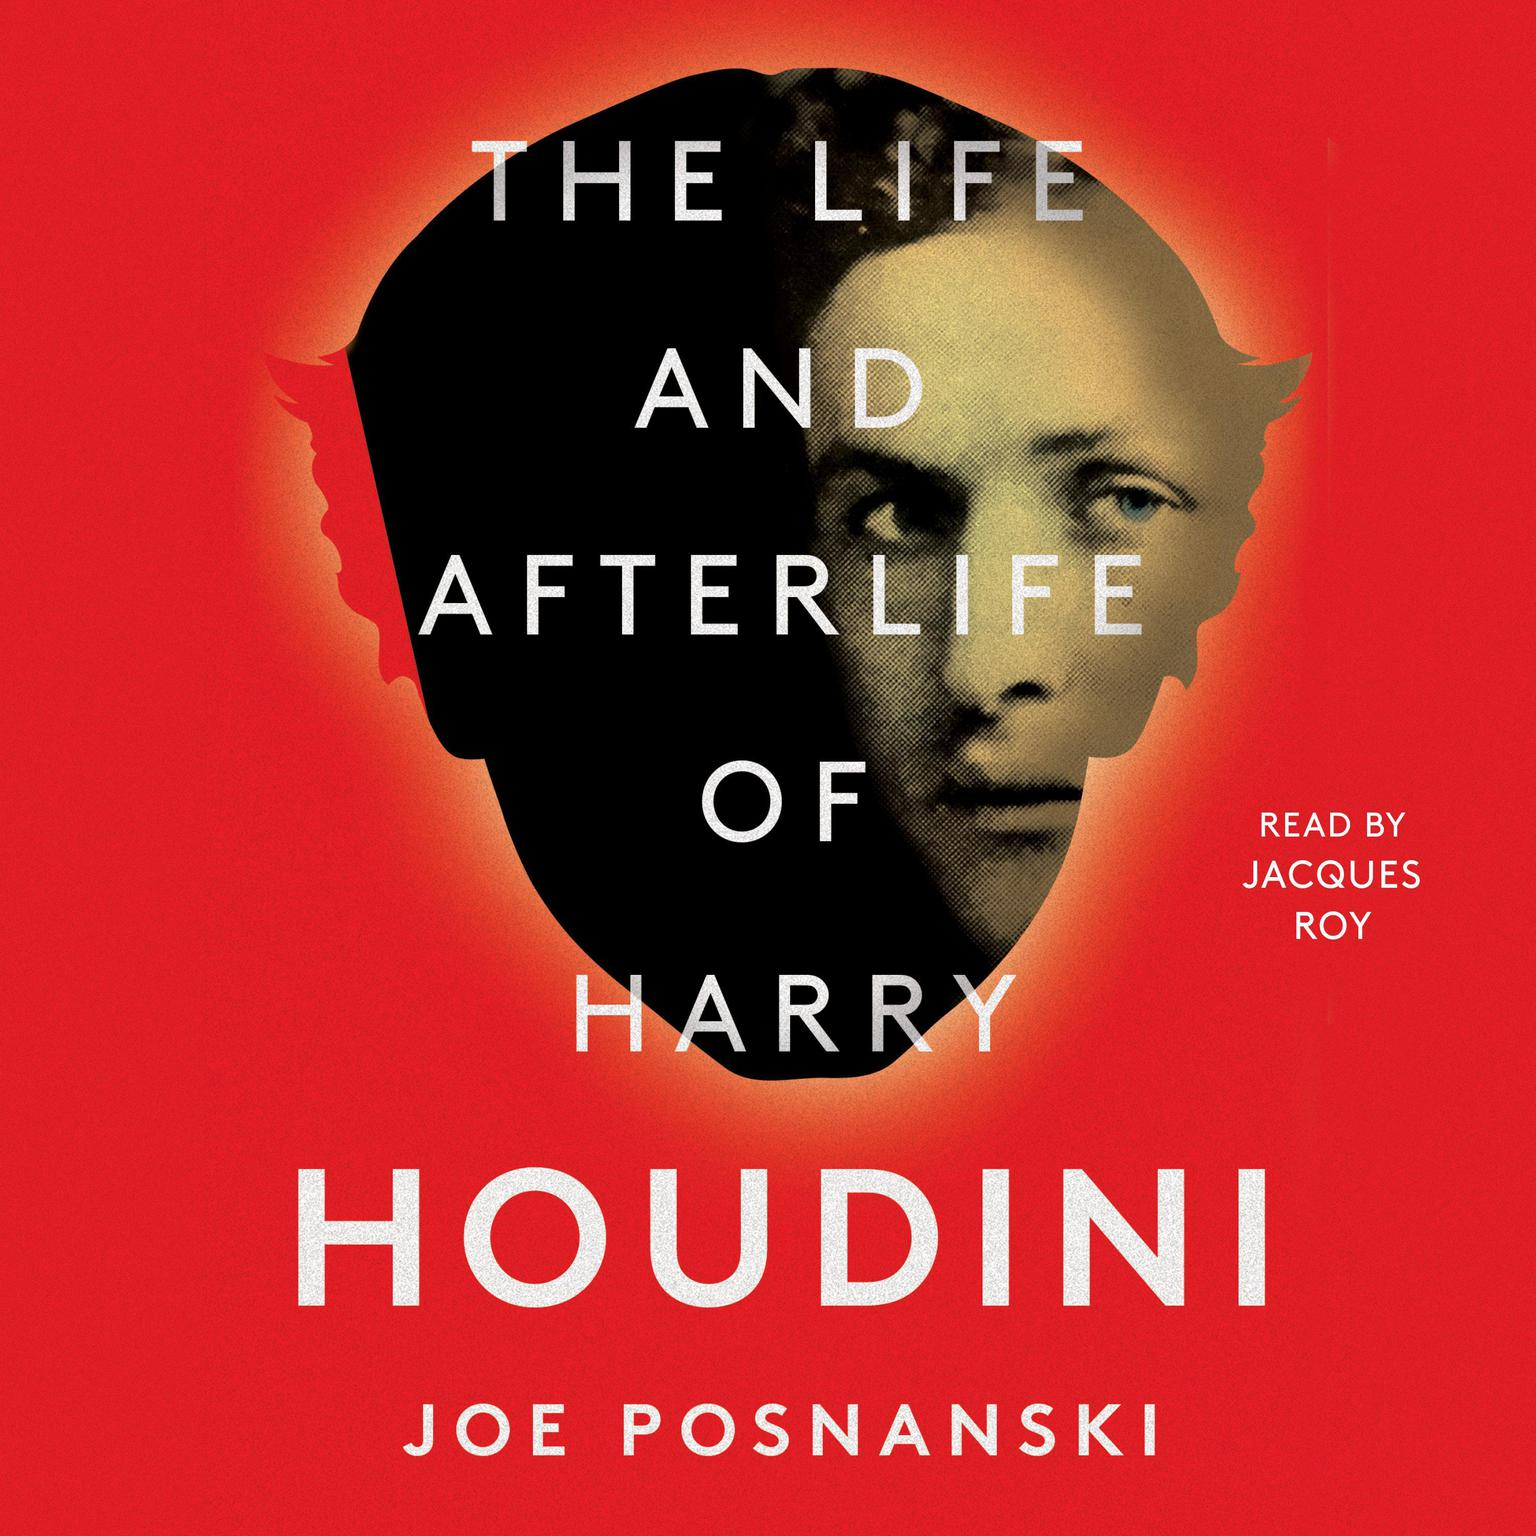 Printable The Life and Afterlife of Harry Houdini Audiobook Cover Art